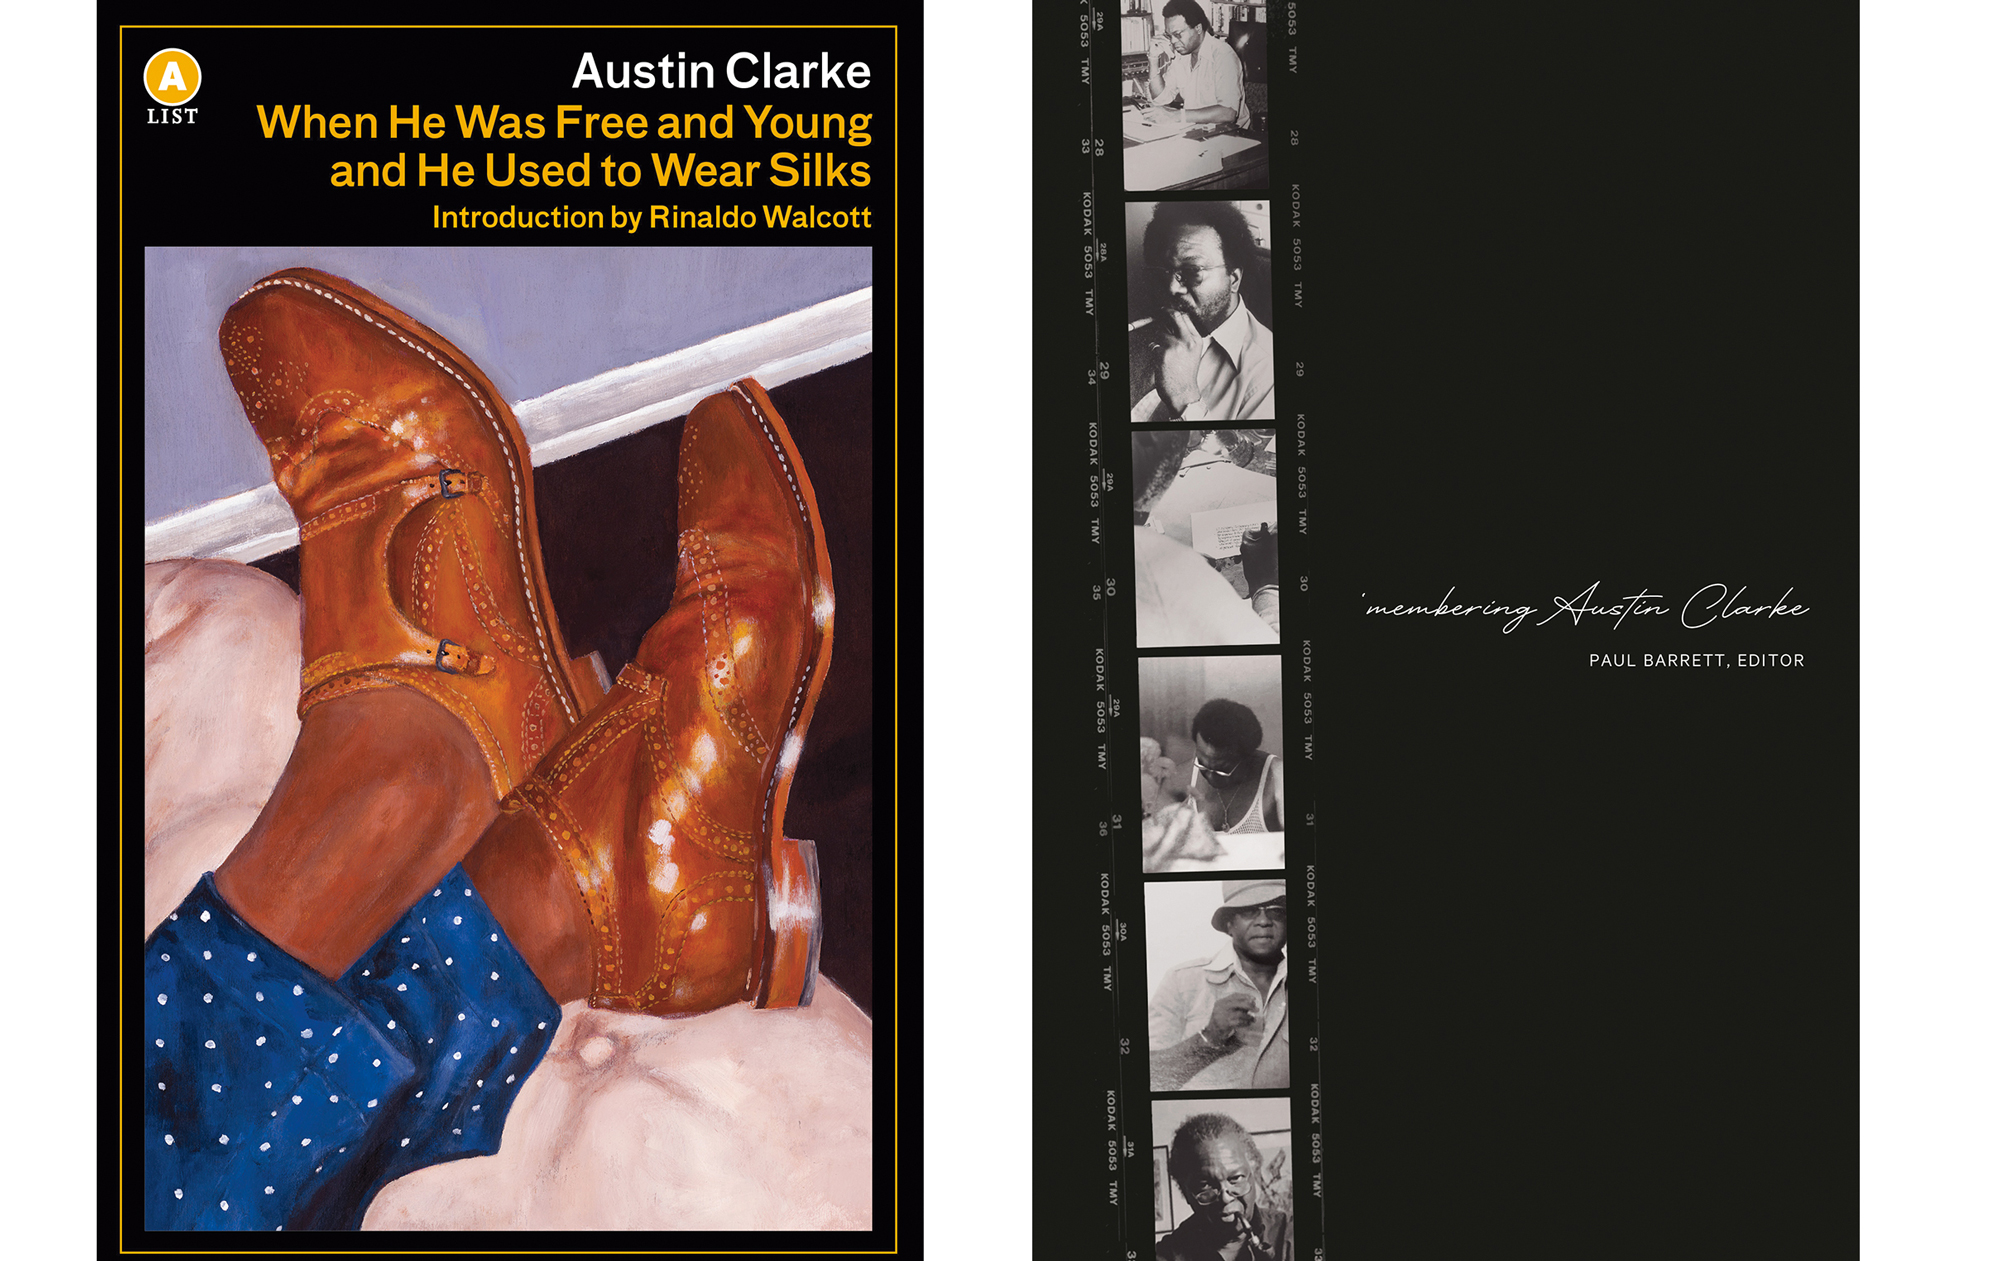 Covers of Austin Clarke's When He Was Free and Young and He Used to Wear Silks and 'membering Austin Clarke